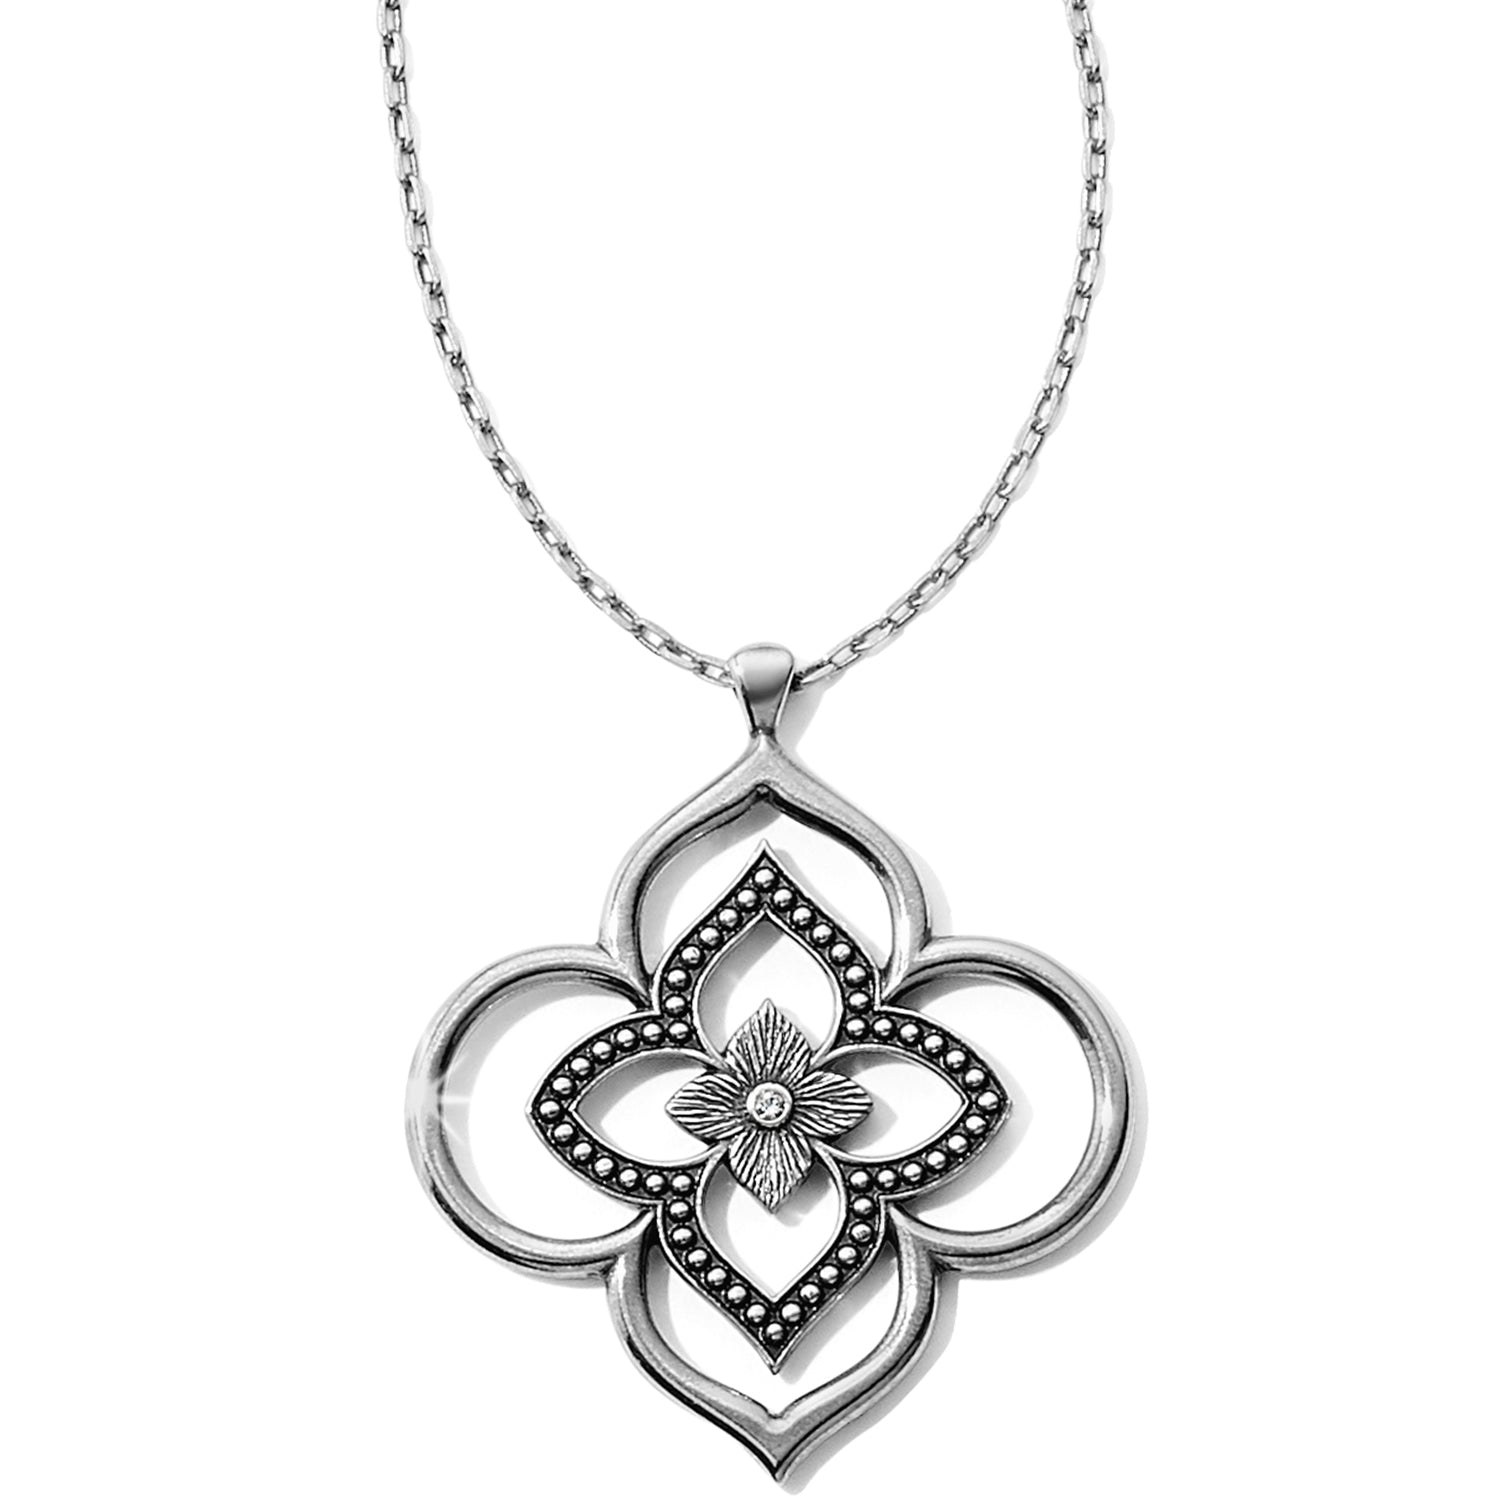 Brighton Jewelry Toledo Collective Pendant Necklace Drawing from its original inspiration, this pendant necklace has Moorish influences with a floral twist. As part of the Brighton Toledo Collective, it will look great layered with any of our other Toledo jewelry.